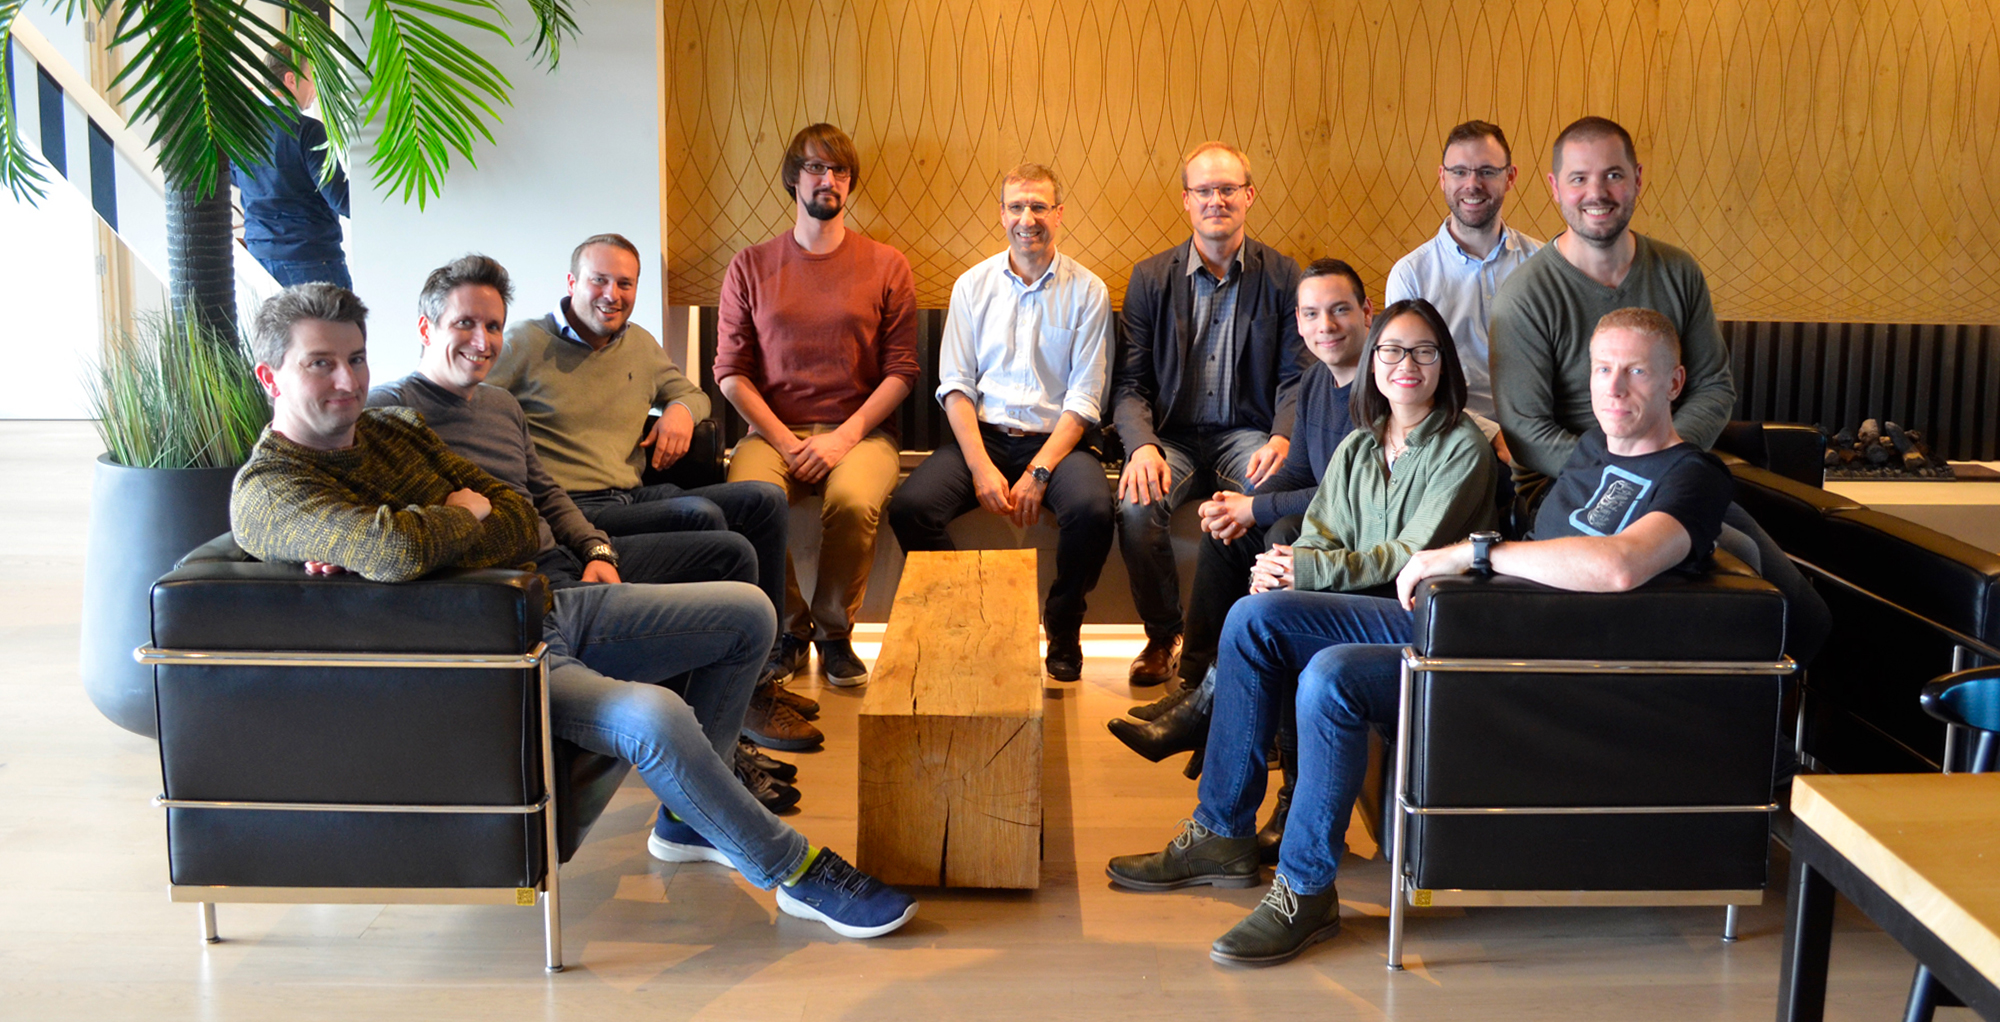 cloudalize_team_gent_belgium_developing_cloud_daas_desktop-as-a-service_compute-as-a-service